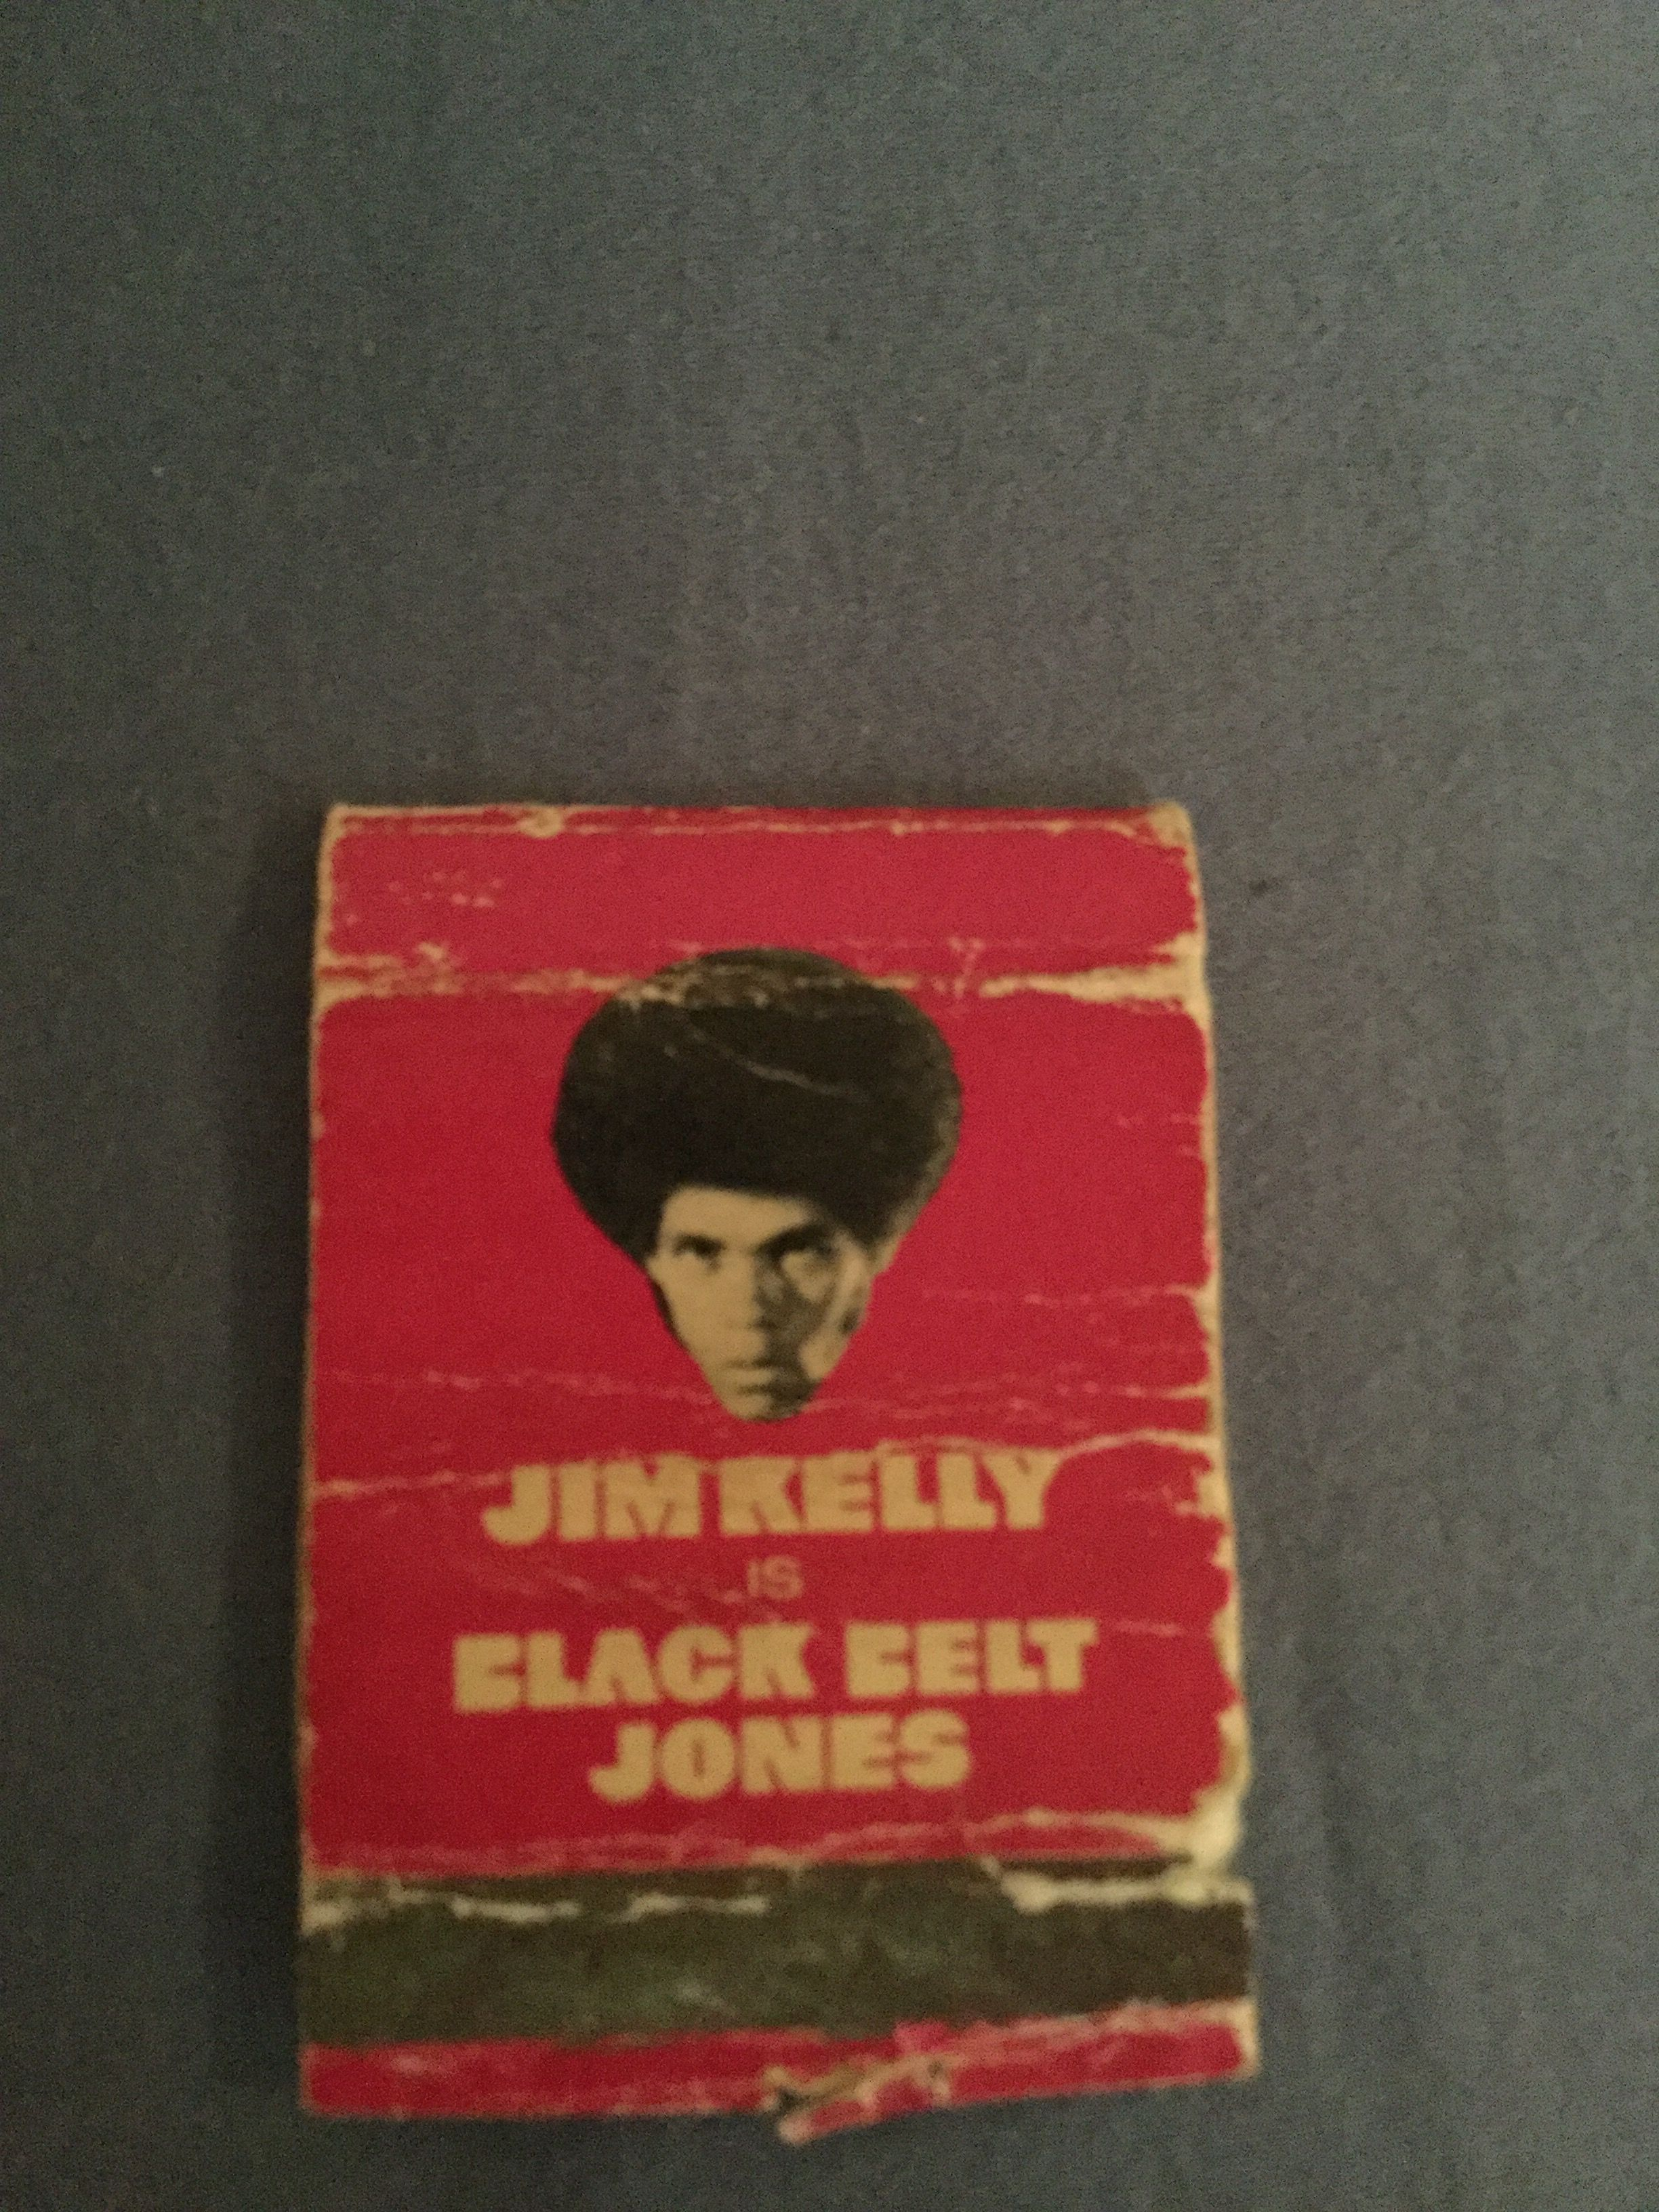 Ive had this match cover for over forty years plus love